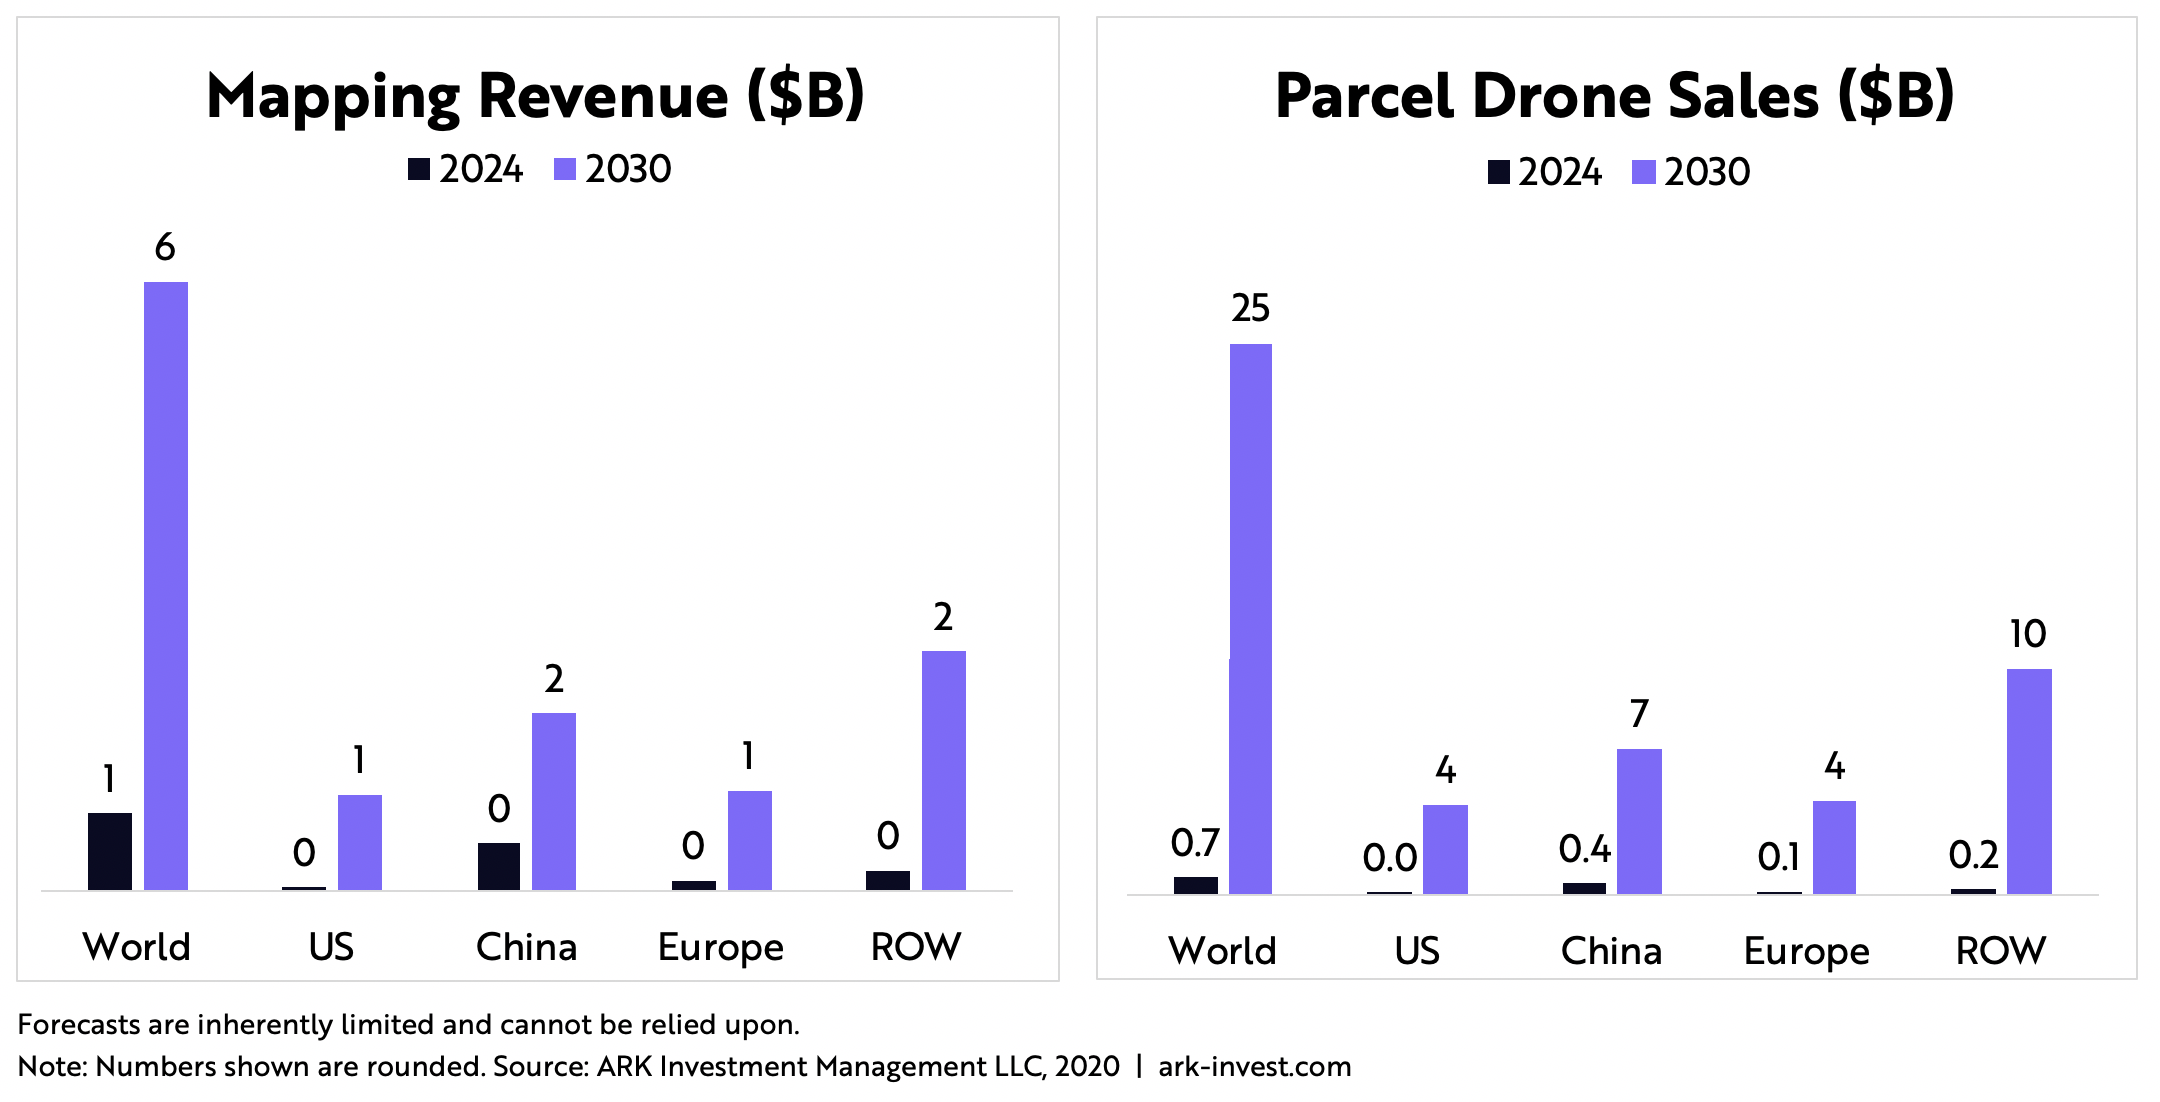 ARK Invest Mapping and Parcel Drone Delivery Revenue